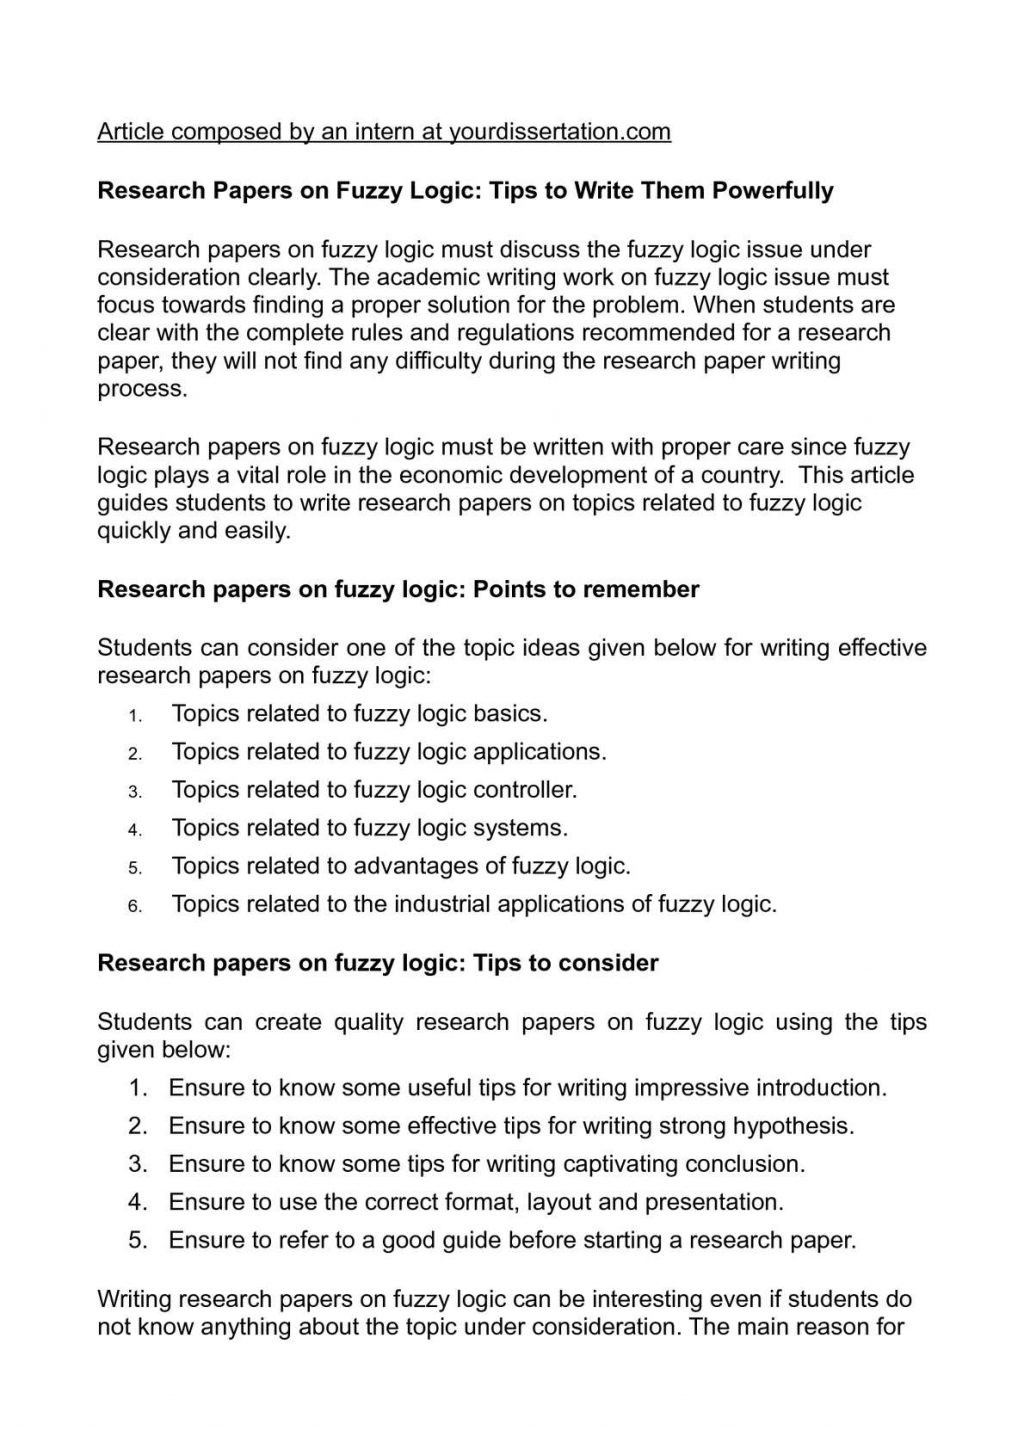 026 20research Paper Samples Fun Topics To Write On Psychology Economics20 1024x1449 About For Wonderful A Research History Controversial Large